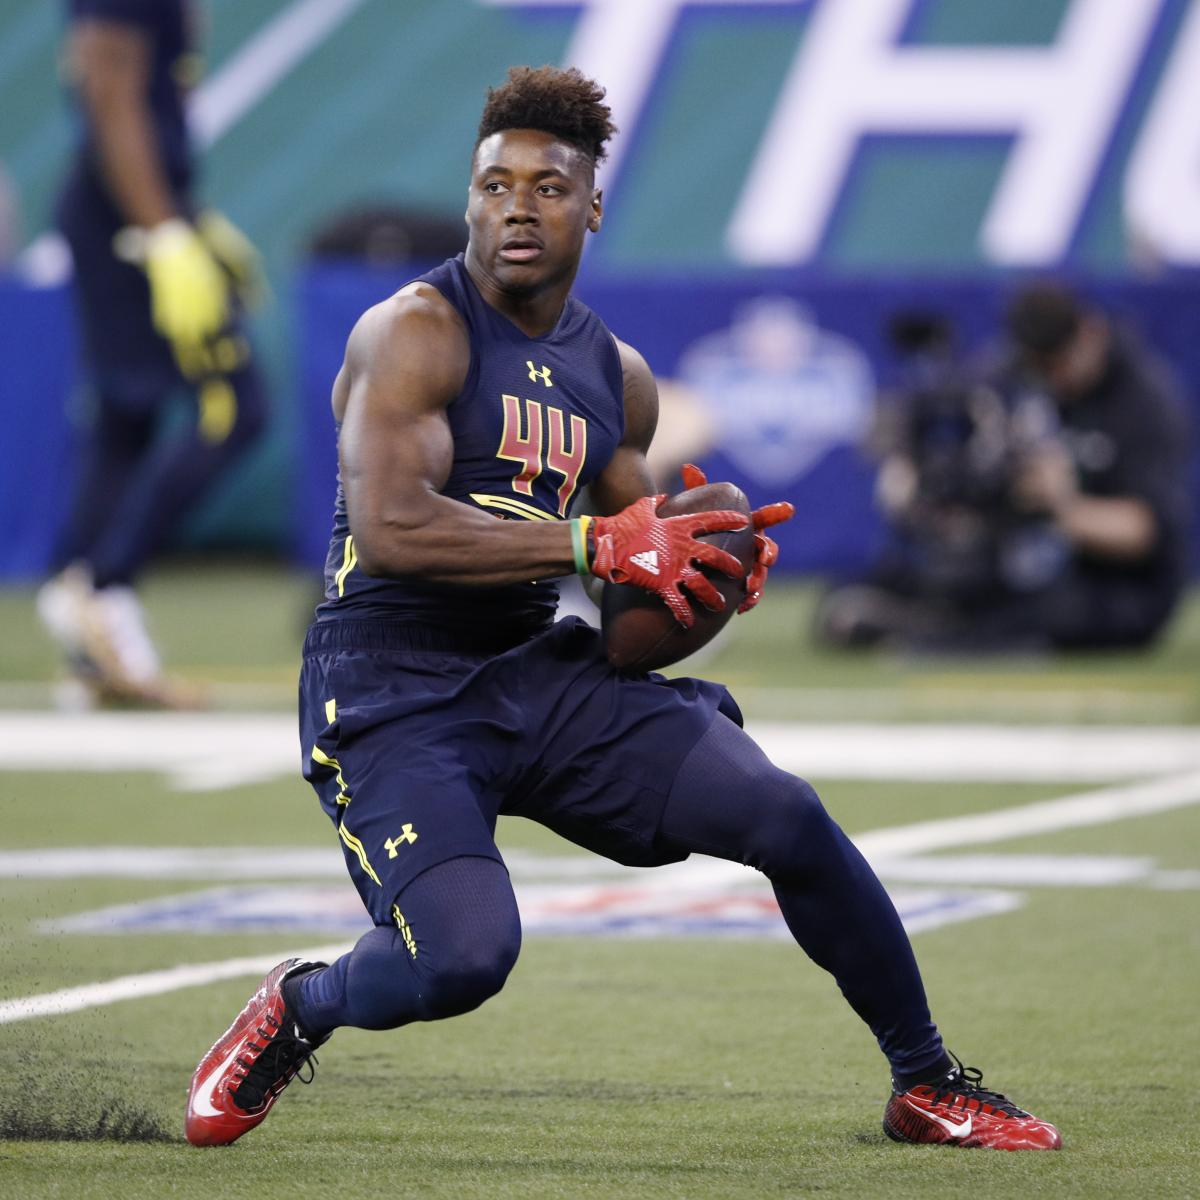 2019 Nfl Draft Ranking The Top Qbs Ready To Be Rookie: Facebook Live: 2017 NFL Draft Round 2 Live Grades And